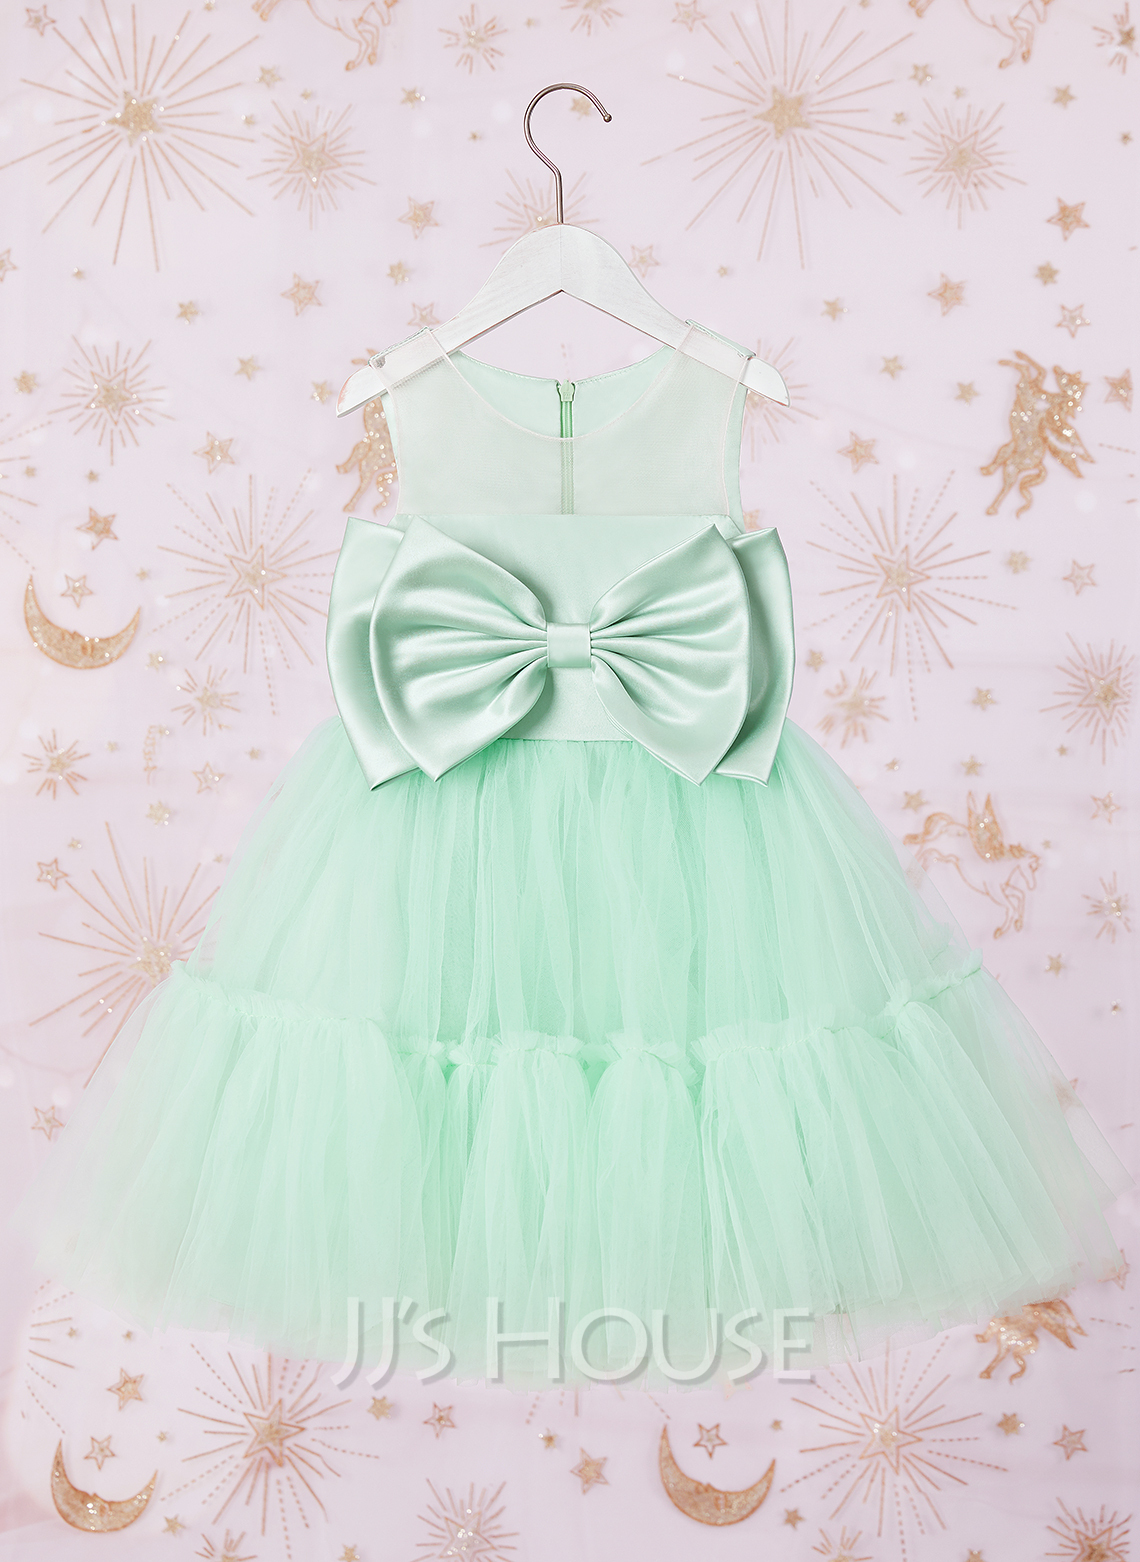 Ball-Gown/Princess Knee-length Flower Girl Dress - Satin/Tulle Sleeveless Scoop Neck With Bow(s)